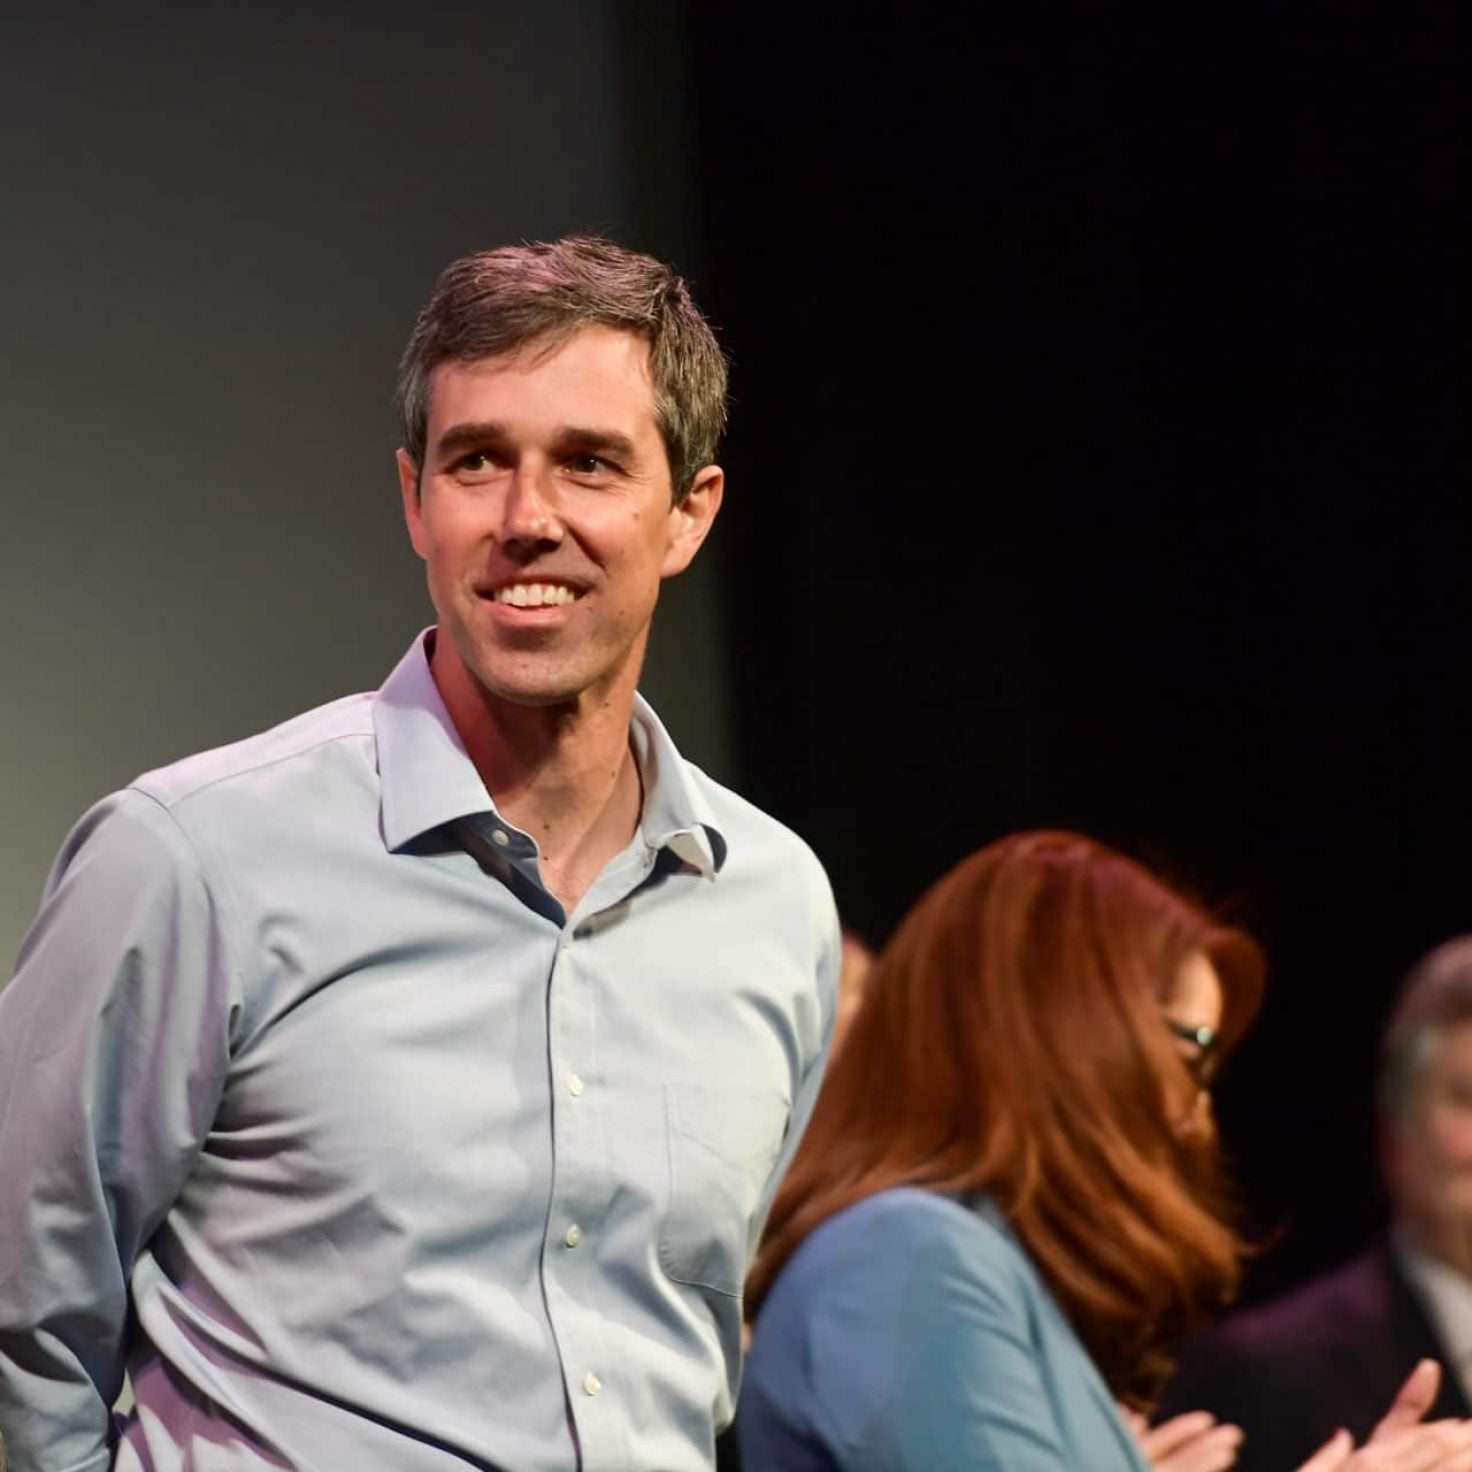 Beto O'Rourke Shares He Is The Descendant Of Slave Owners